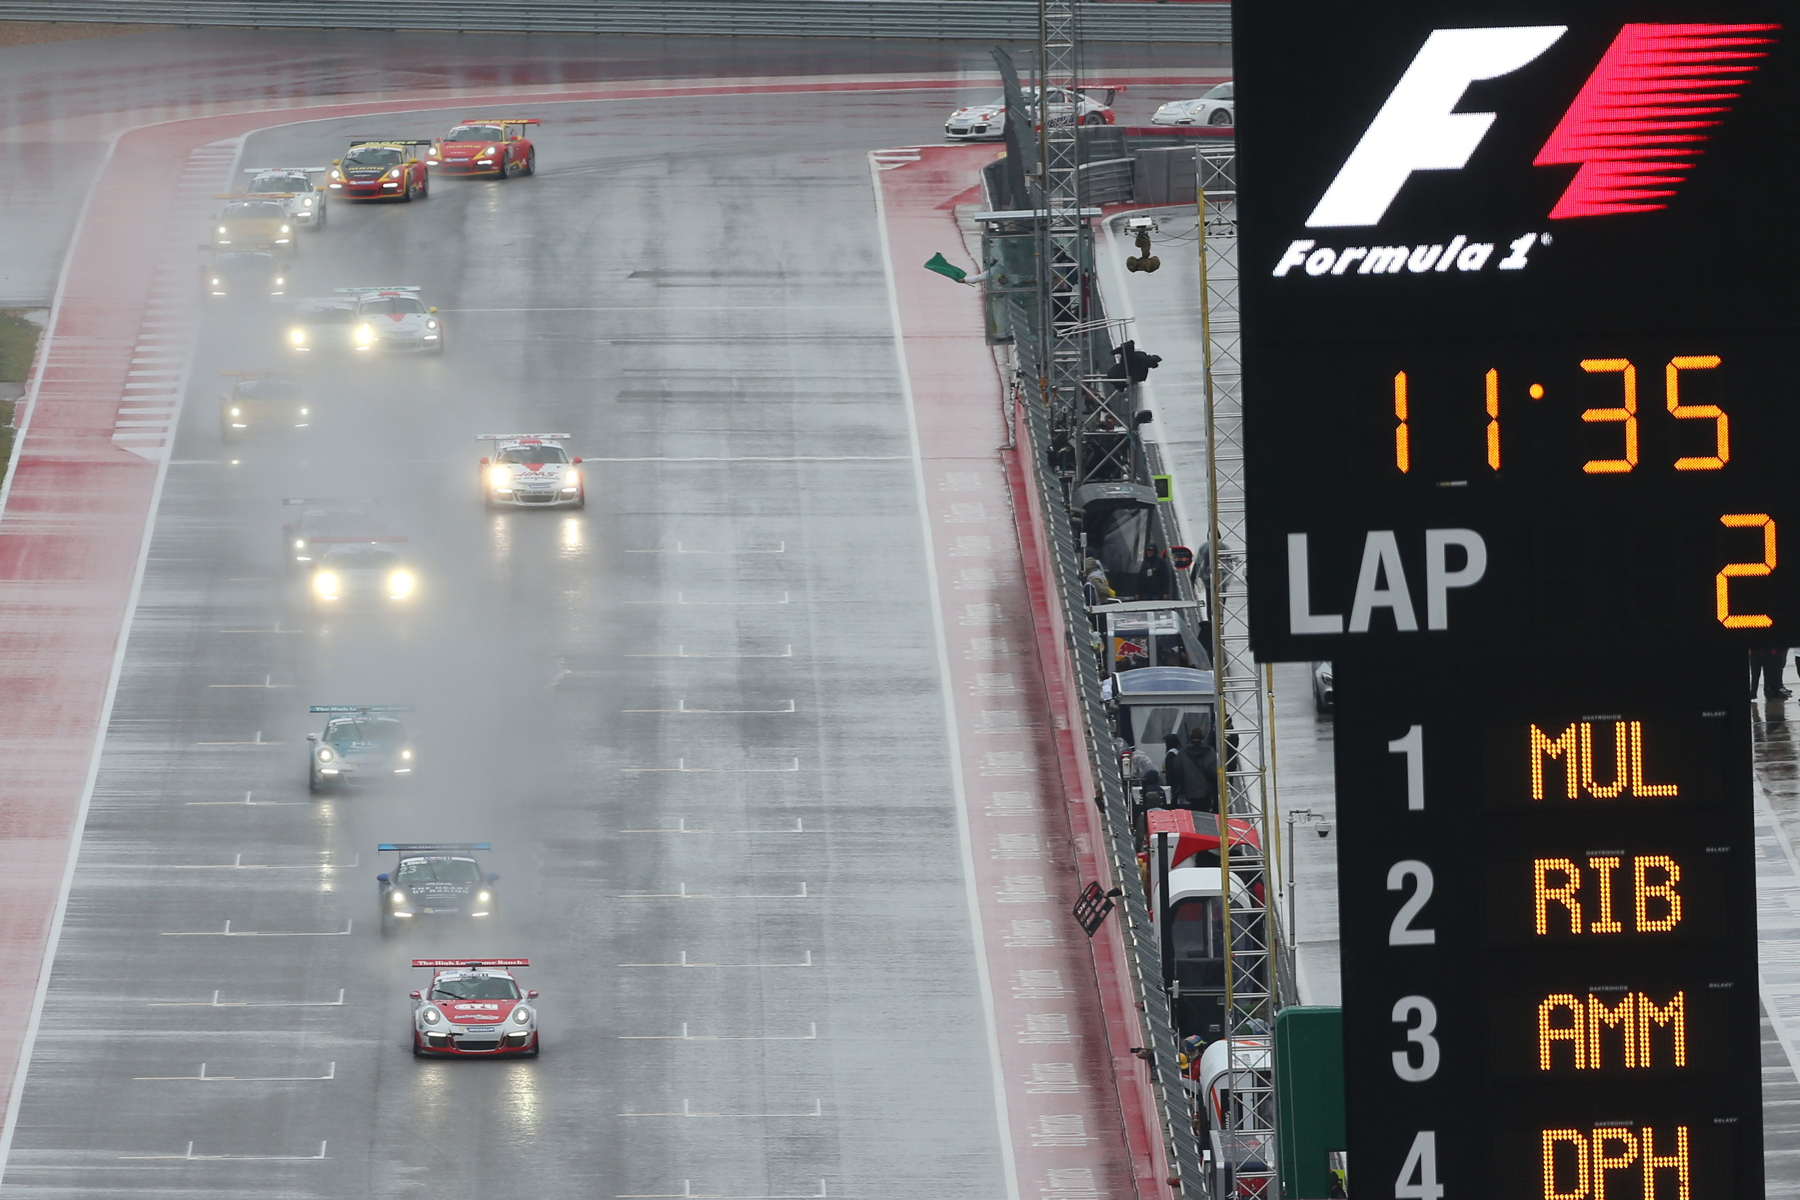 Porsche Junior, Sven Müller led early on in the wet conditions before Riberas chose his moment to pounce.